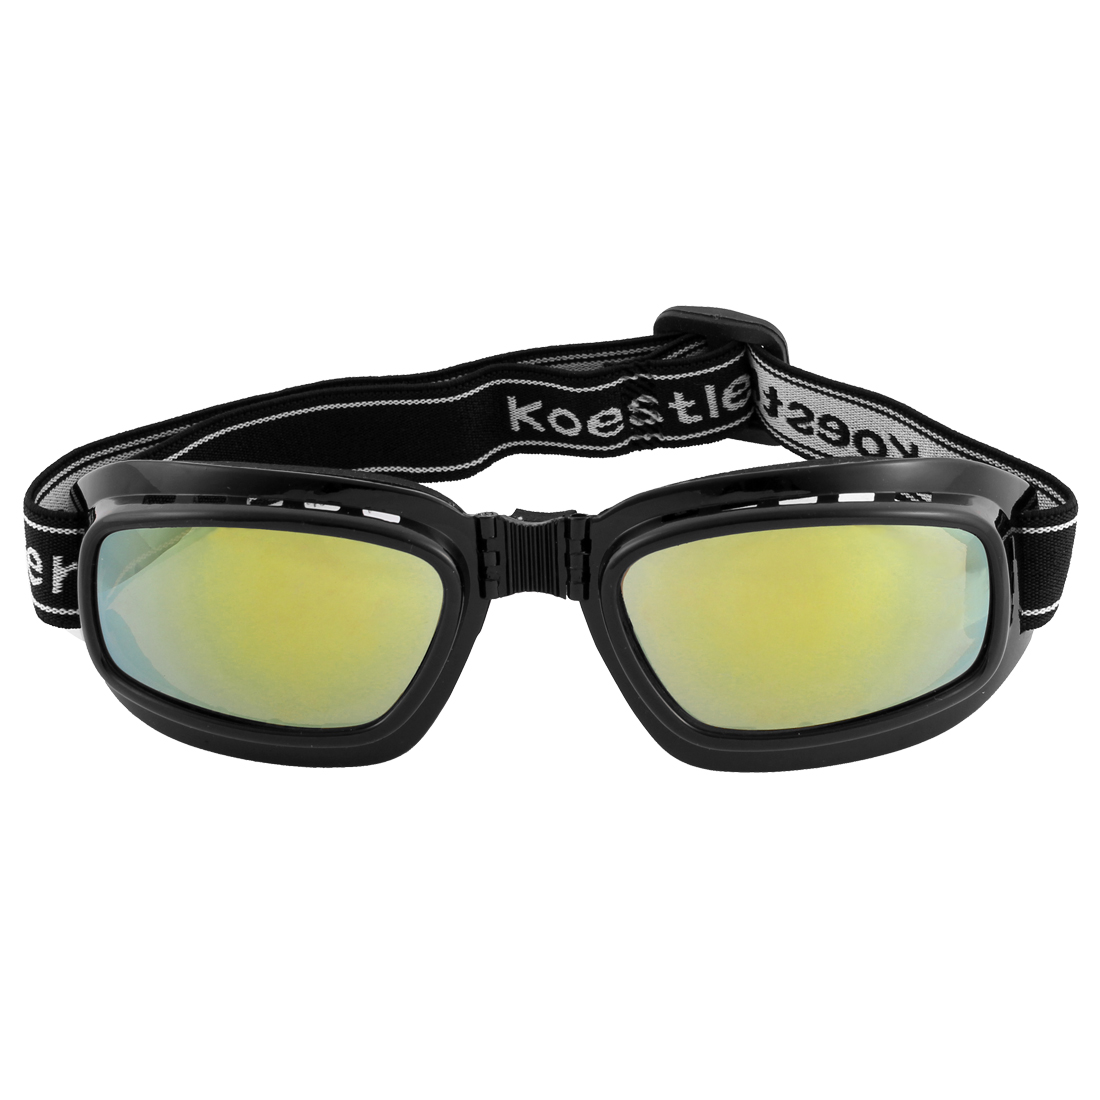 Black Mirrored Lens Full Rim Folding Motorcycle Protective Goggles Glasses Eyewear